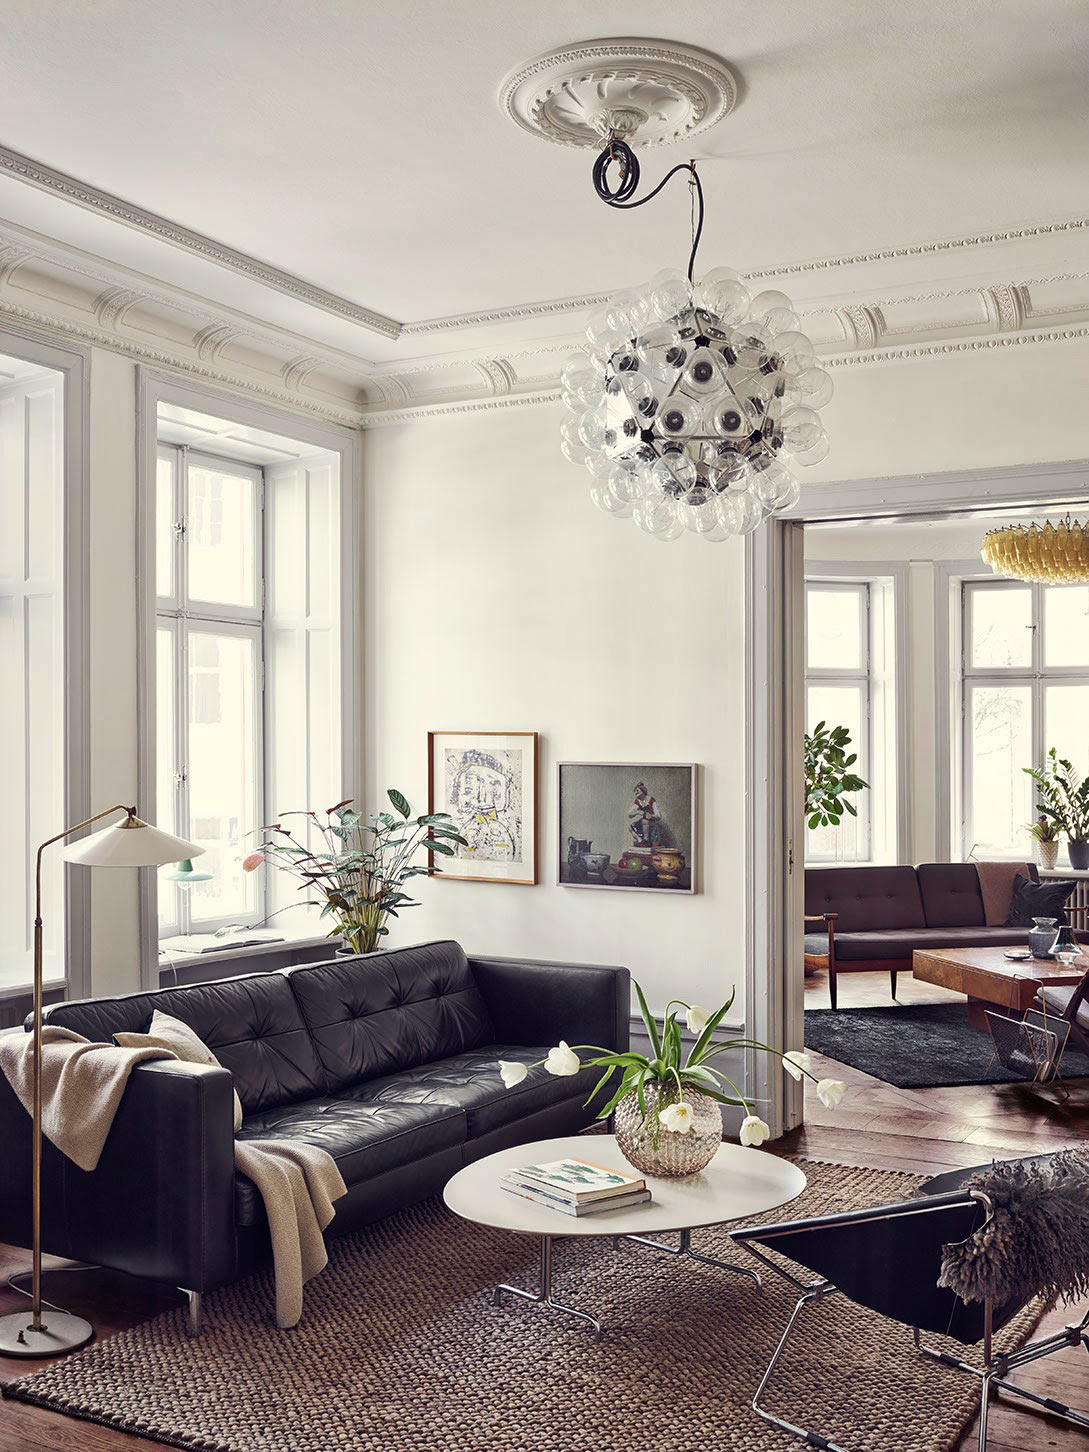 Stockholm-Interior-Apartment-Joanna-Laven-3